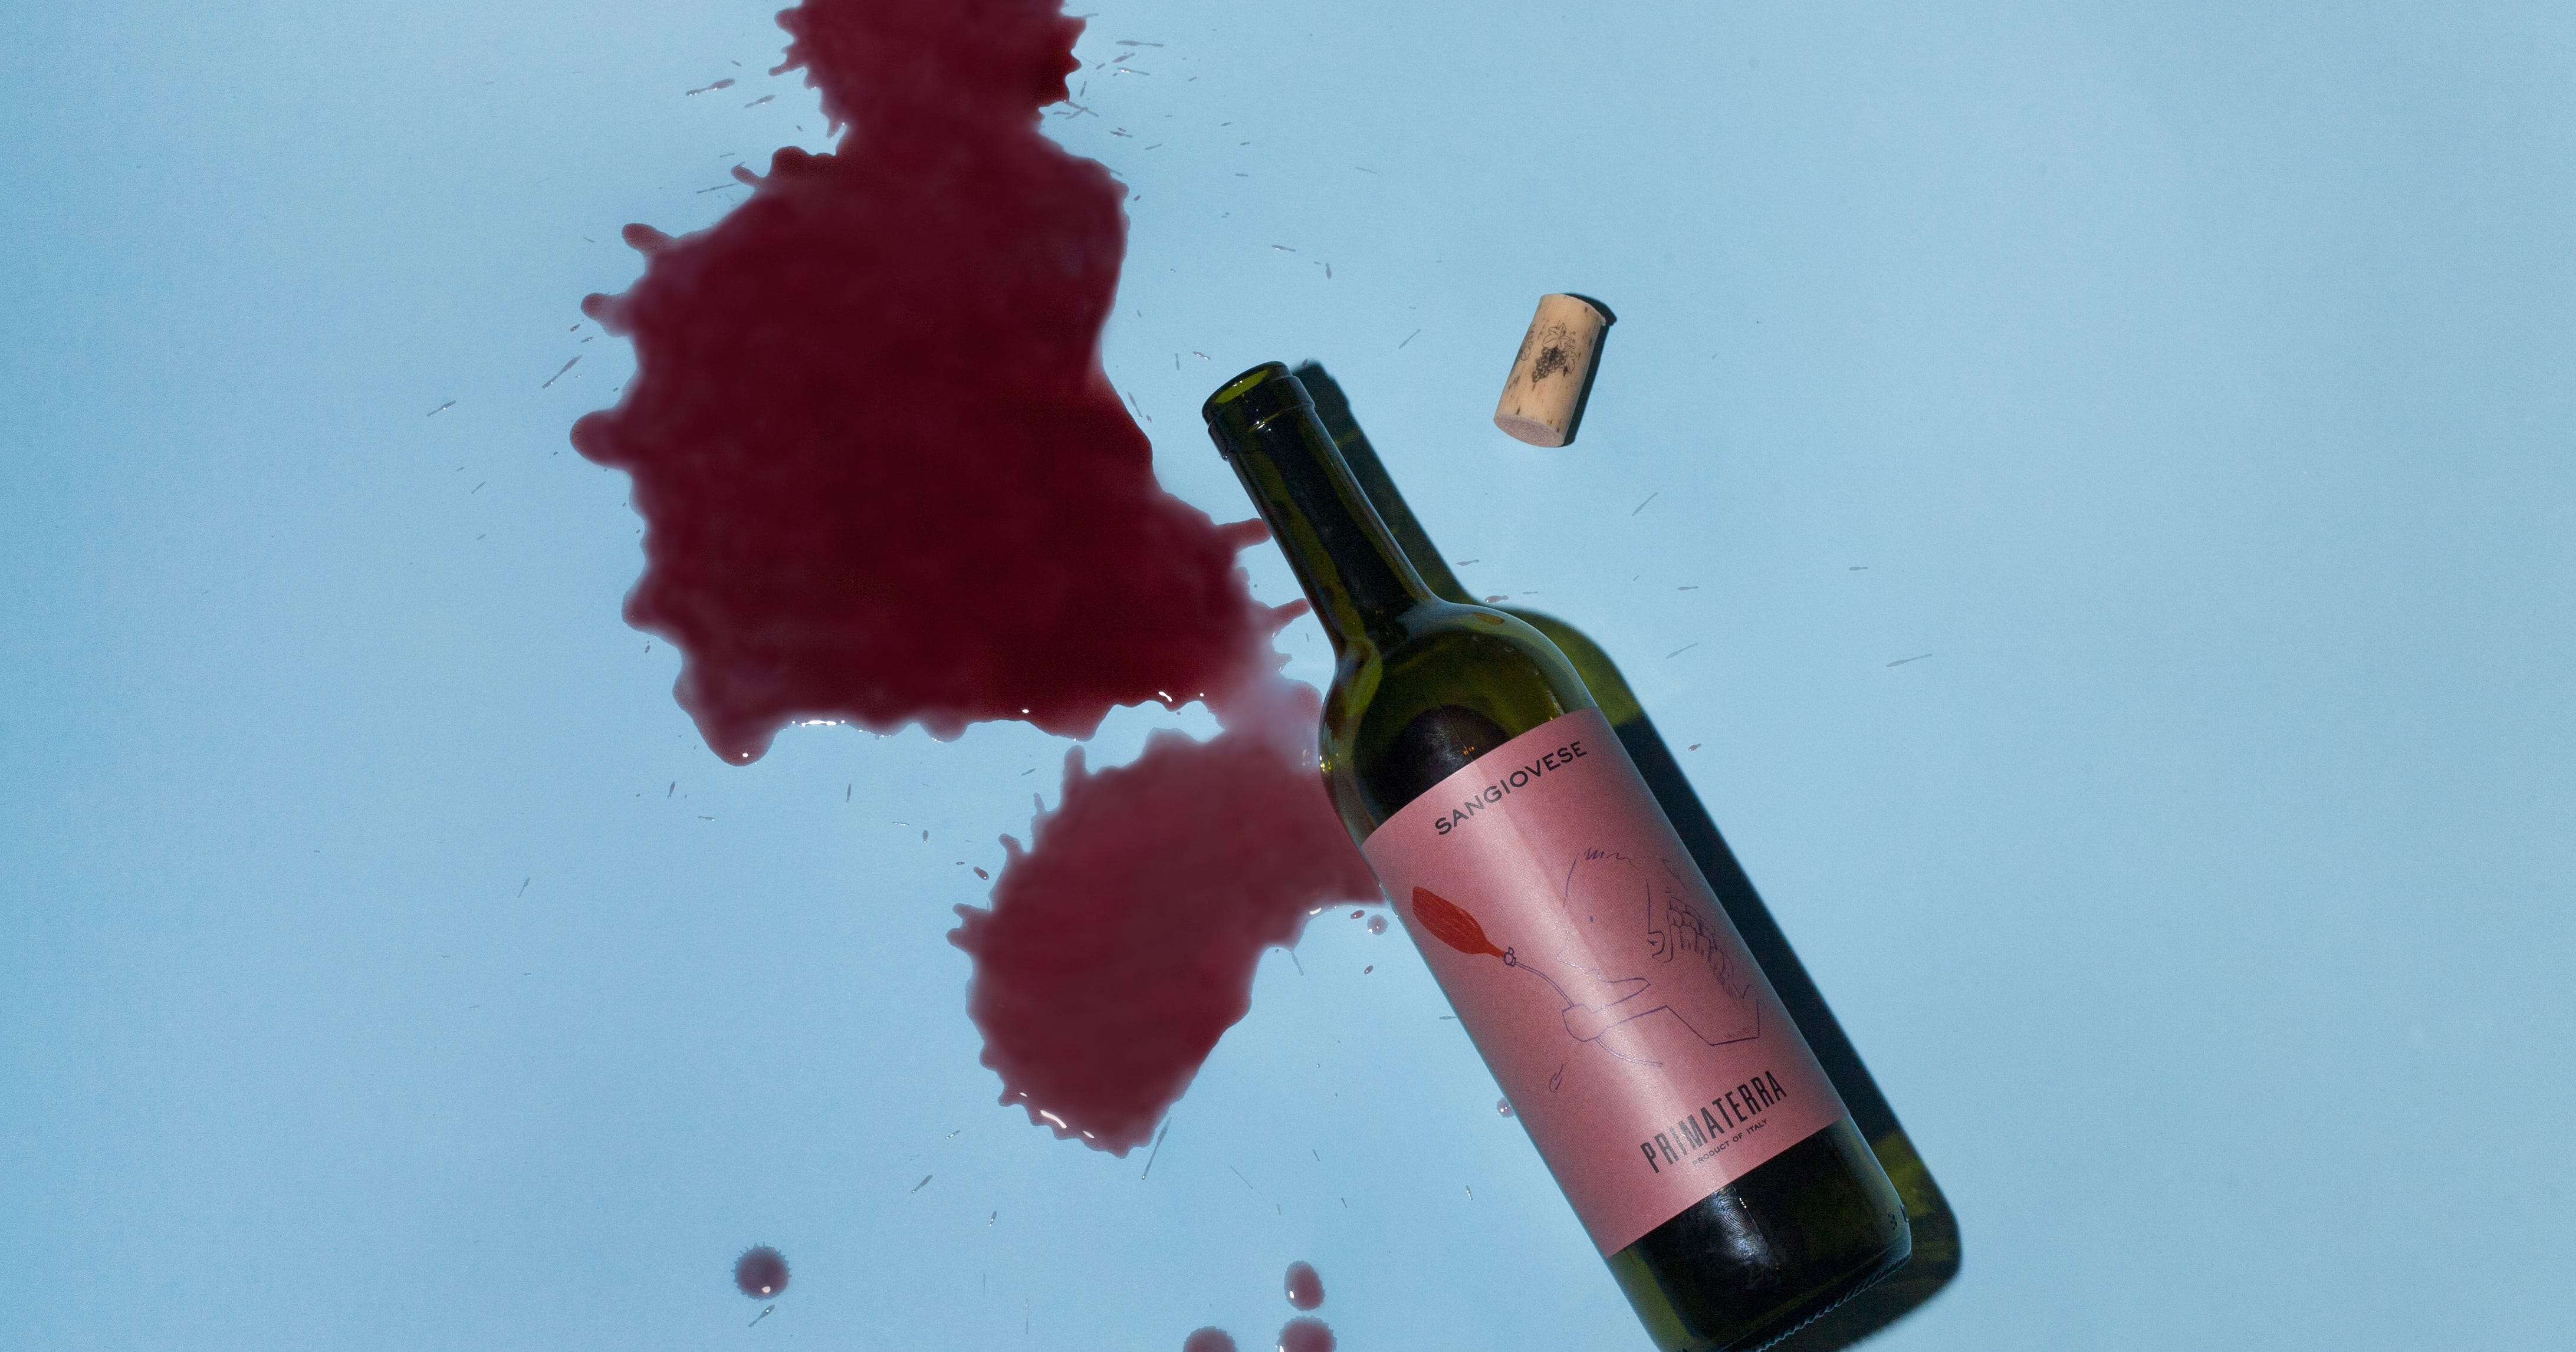 We Asked 9 Wine Experts To Pick Out Their Favorite Bottles For $12 Or Less